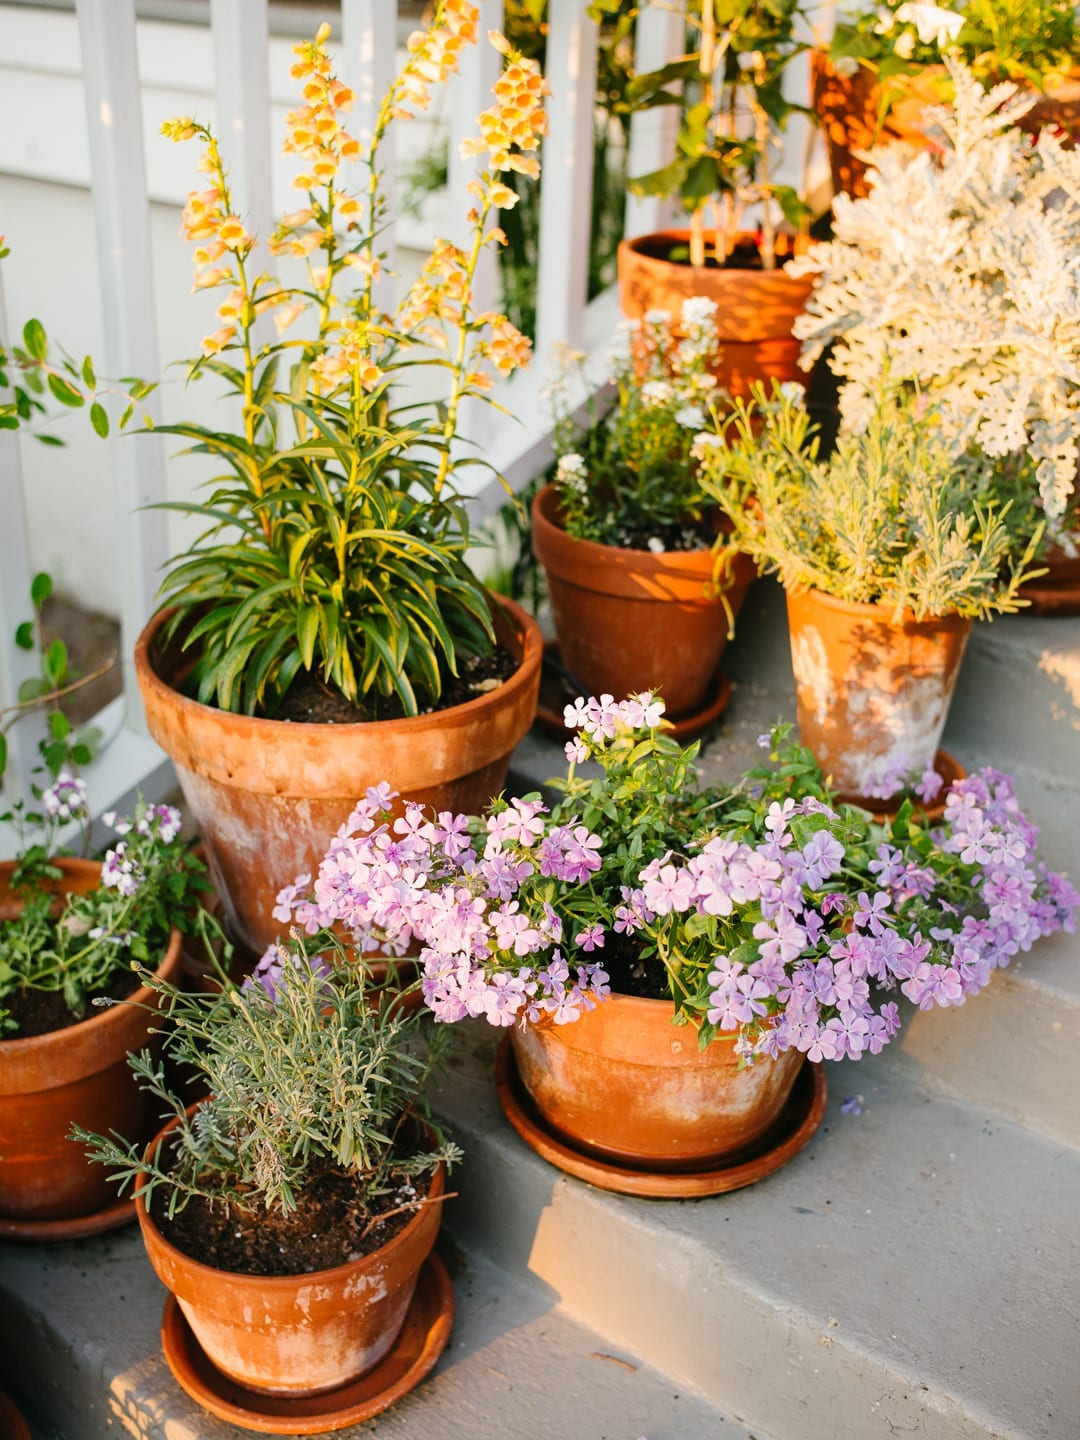 Plant care tips from Lucy Cuneo